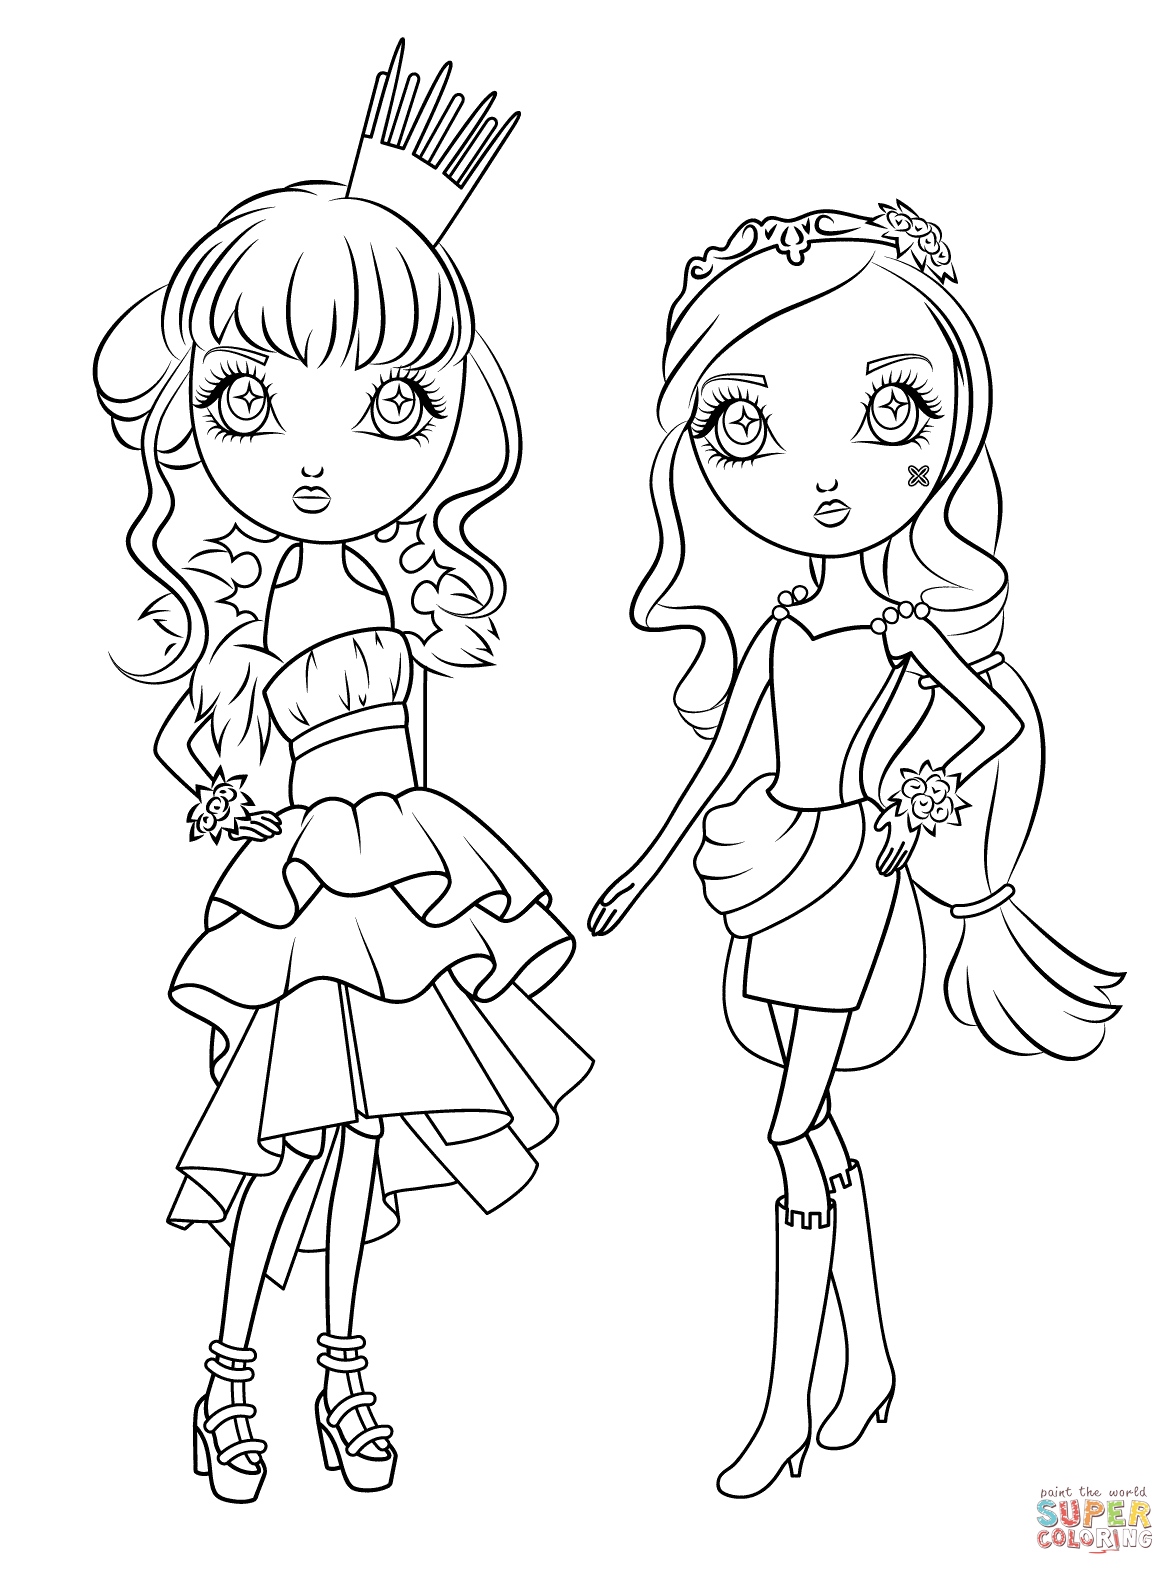 boxy girl coloring pages poledancer lines by deviantashtareth on deviantart boxy girl pages coloring